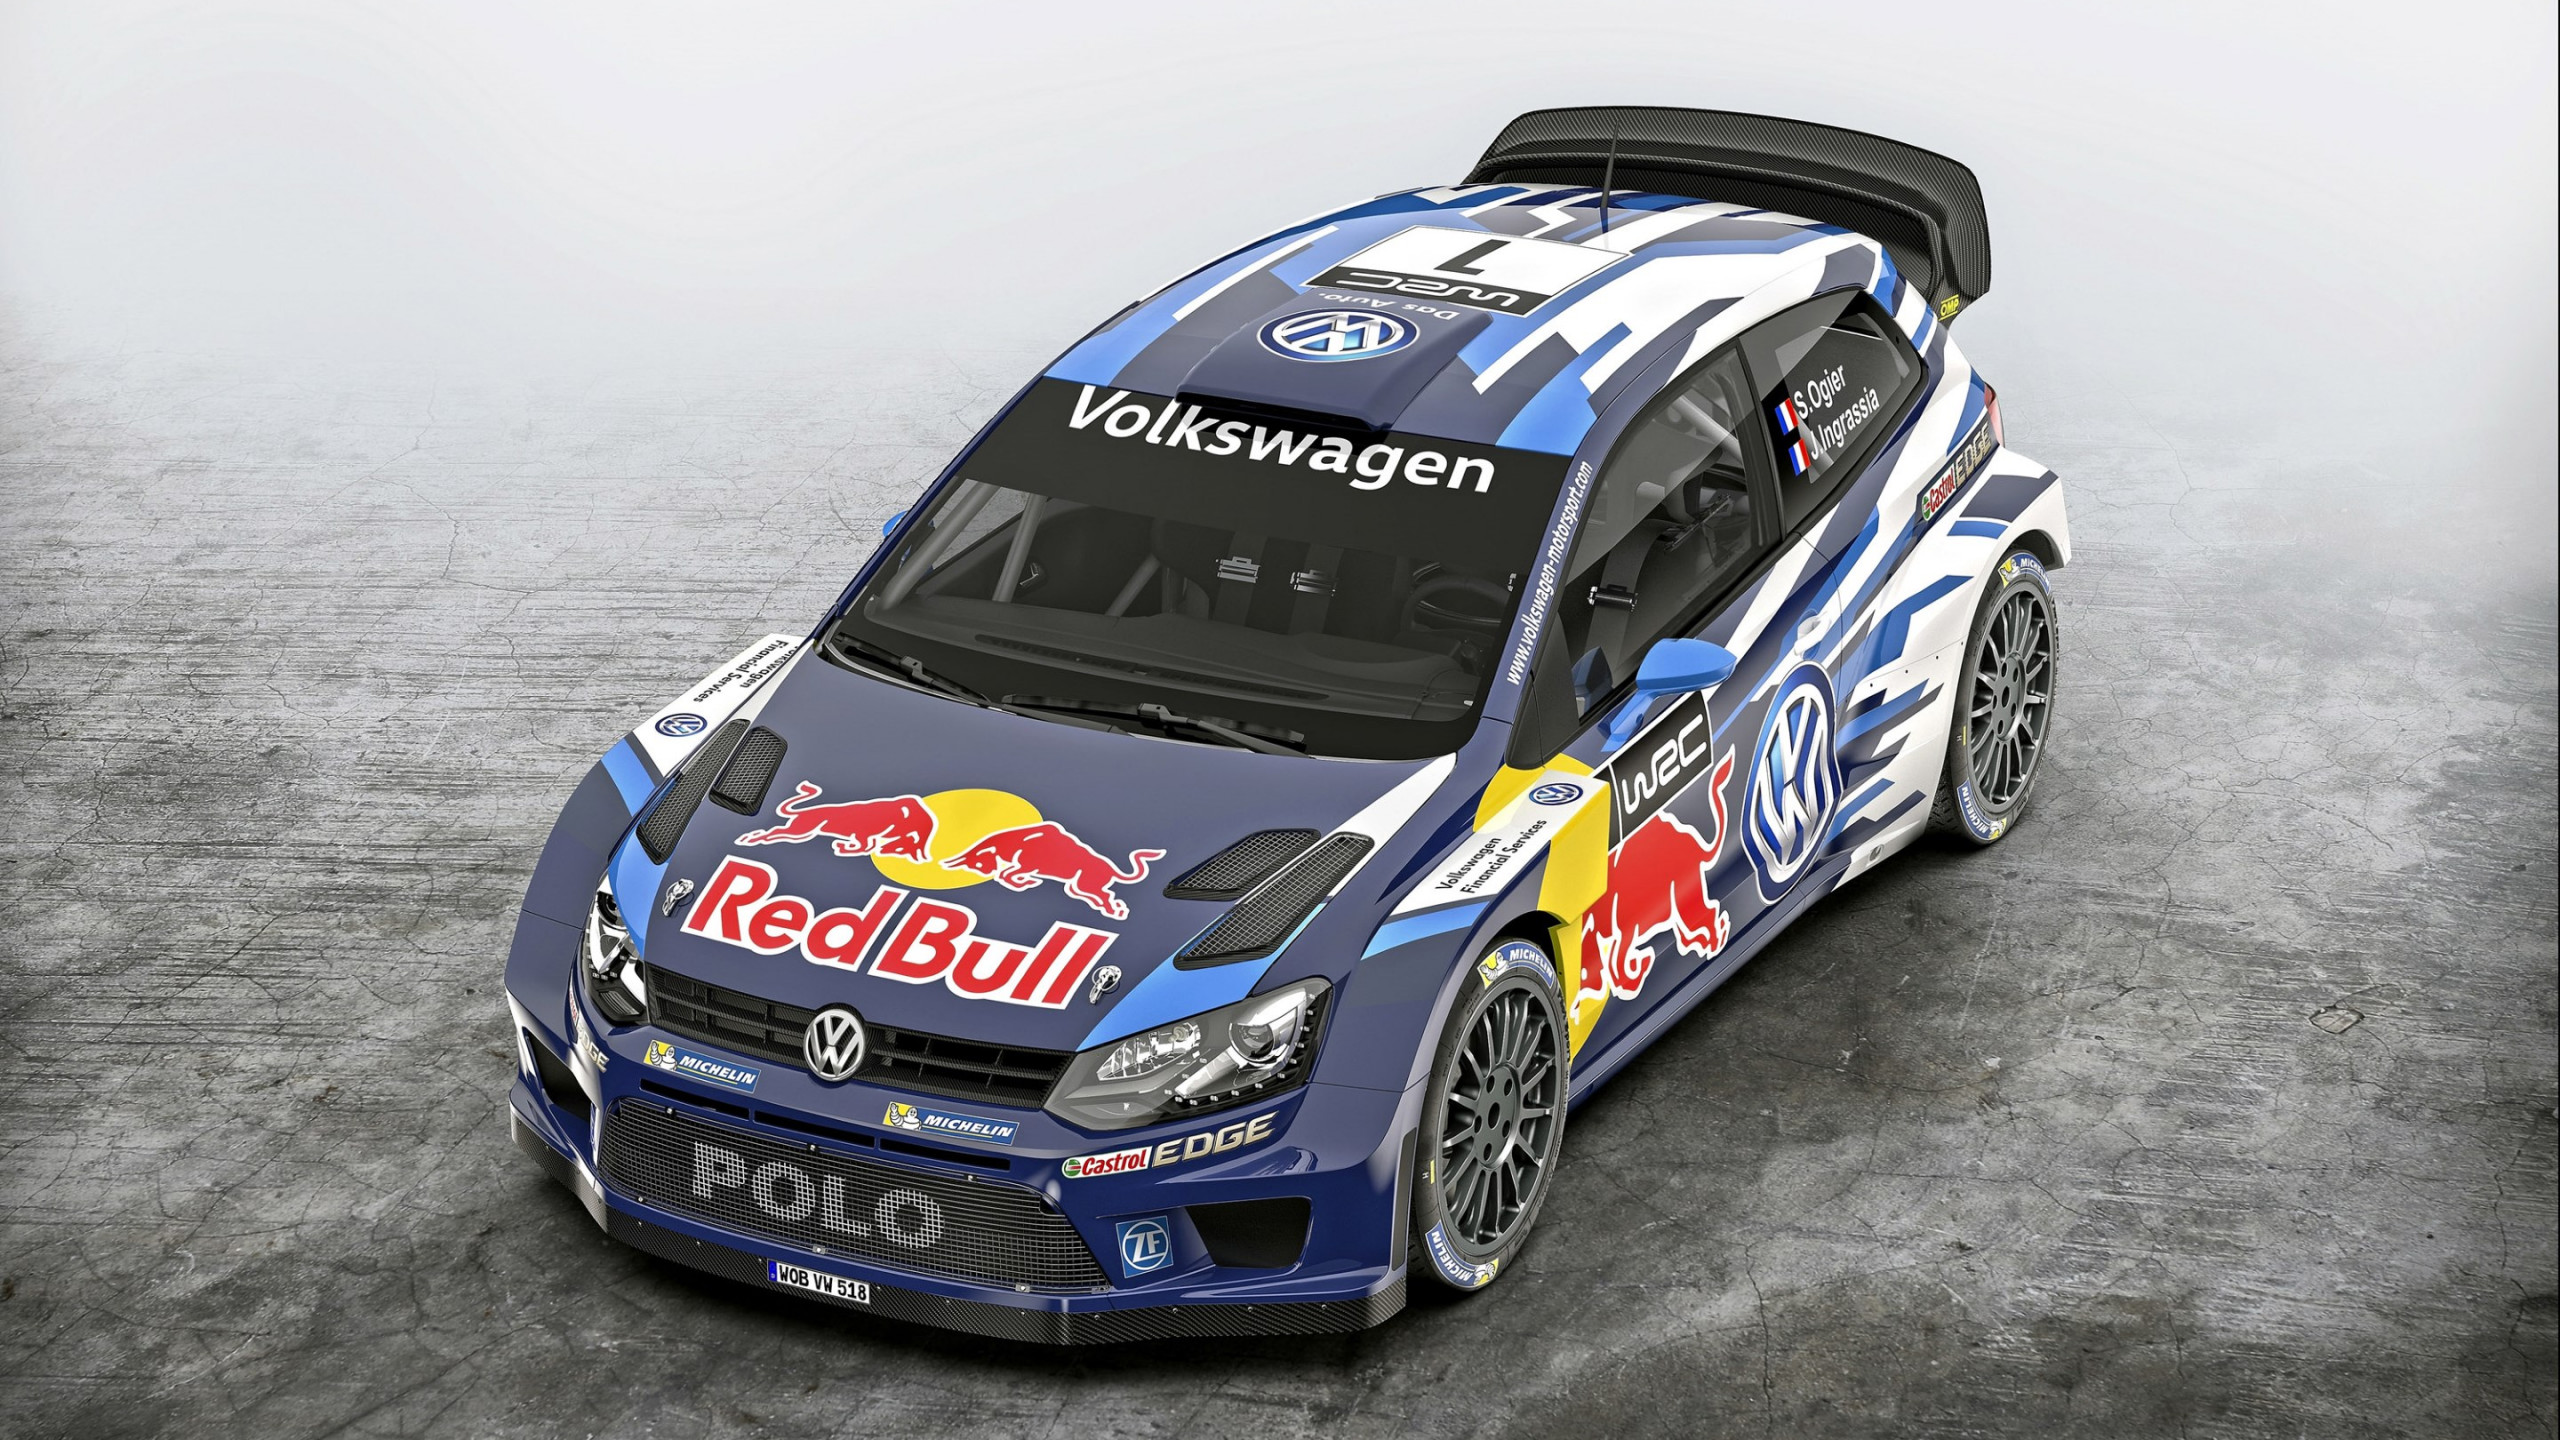 Volkswagen Polo R WRC wallpaper 2560x1440